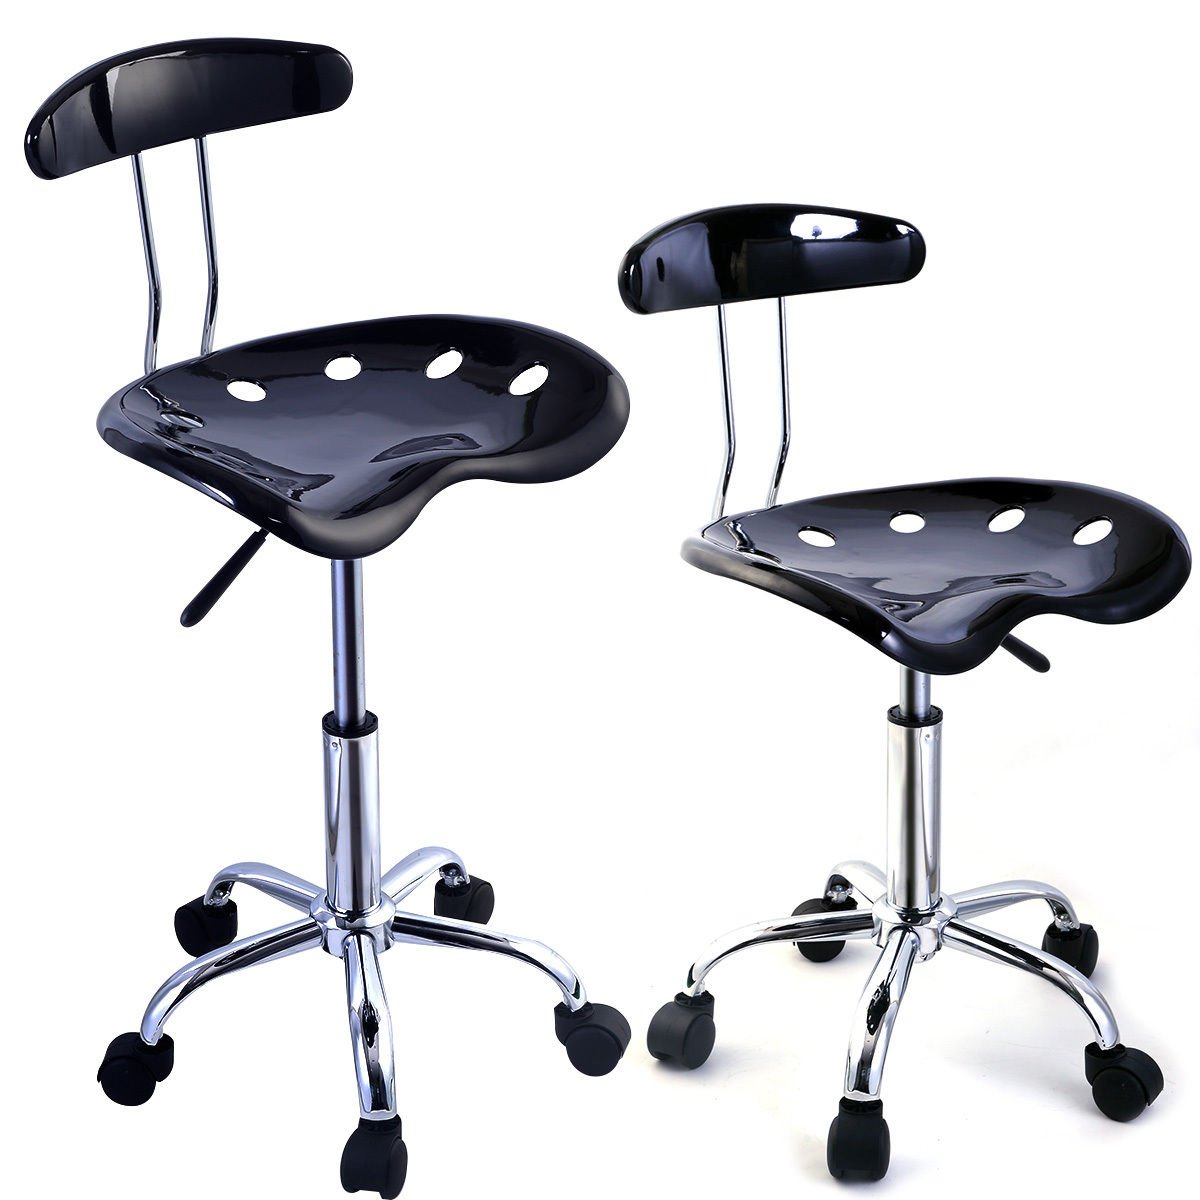 Amazon.com 1pc Adjustable Bar Stools ABS Tractor Seat Swivel Chrome Kitchen Breakfast Black Kitchen \u0026 Dining  sc 1 st  Amazon.com & Amazon.com: 1pc Adjustable Bar Stools ABS Tractor Seat Swivel ... islam-shia.org